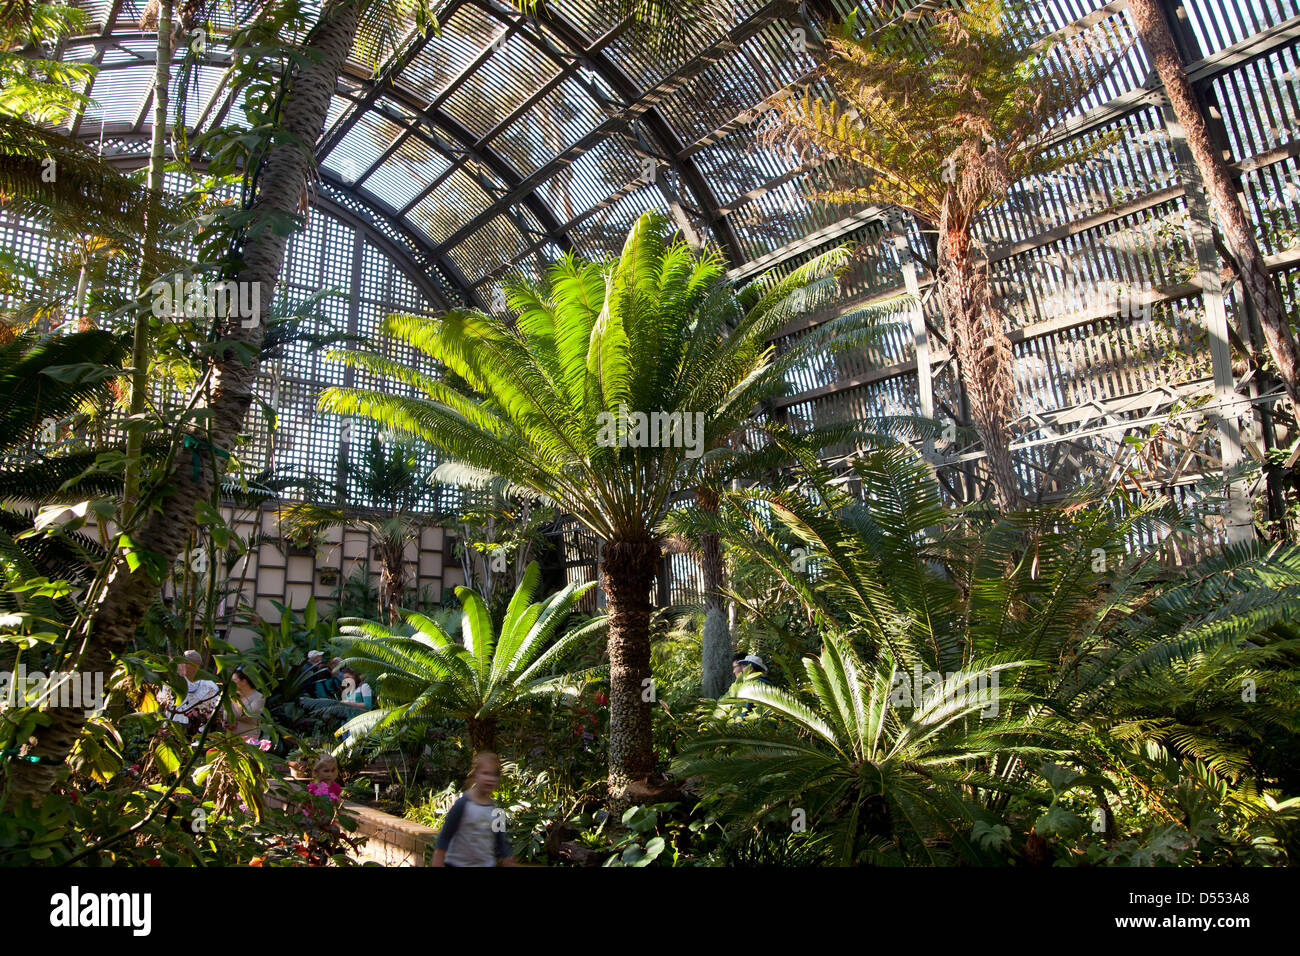 Tree Ferns At The Botanical Building At Balboa Park San Diego Stock Photo Royalty Free Image